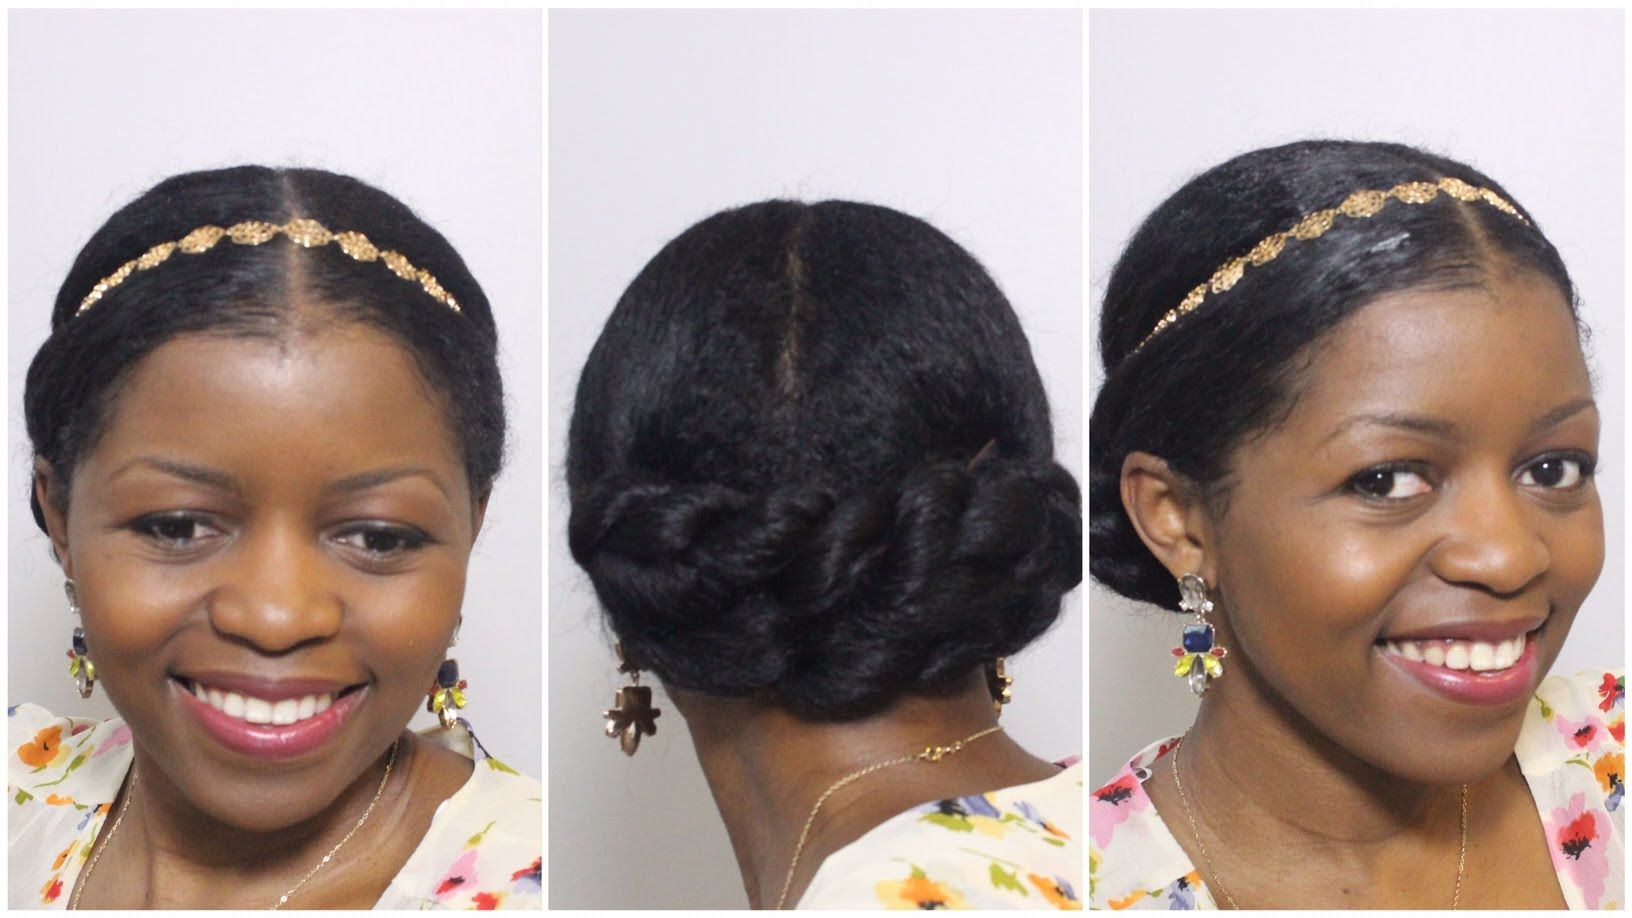 Elegant Twisted Bun Updo Perfect For Formal Wedding Occasion Natural Hair Misst1806 Natural Hair Styles Hair Styles Natural Wedding Hairstyles